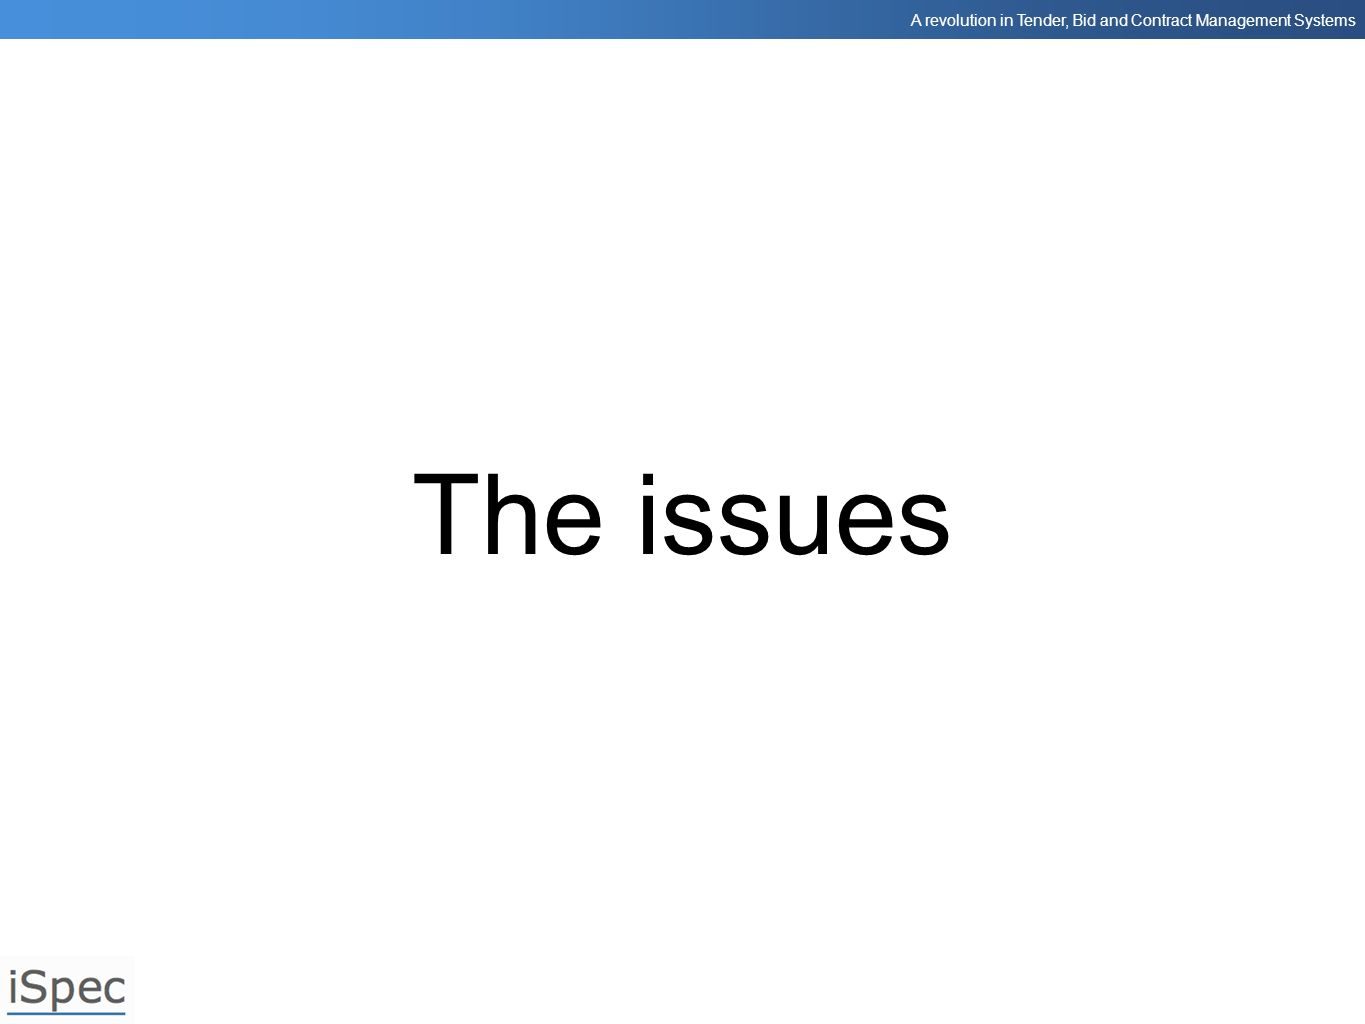 The issues First of all let's take a look at the issues